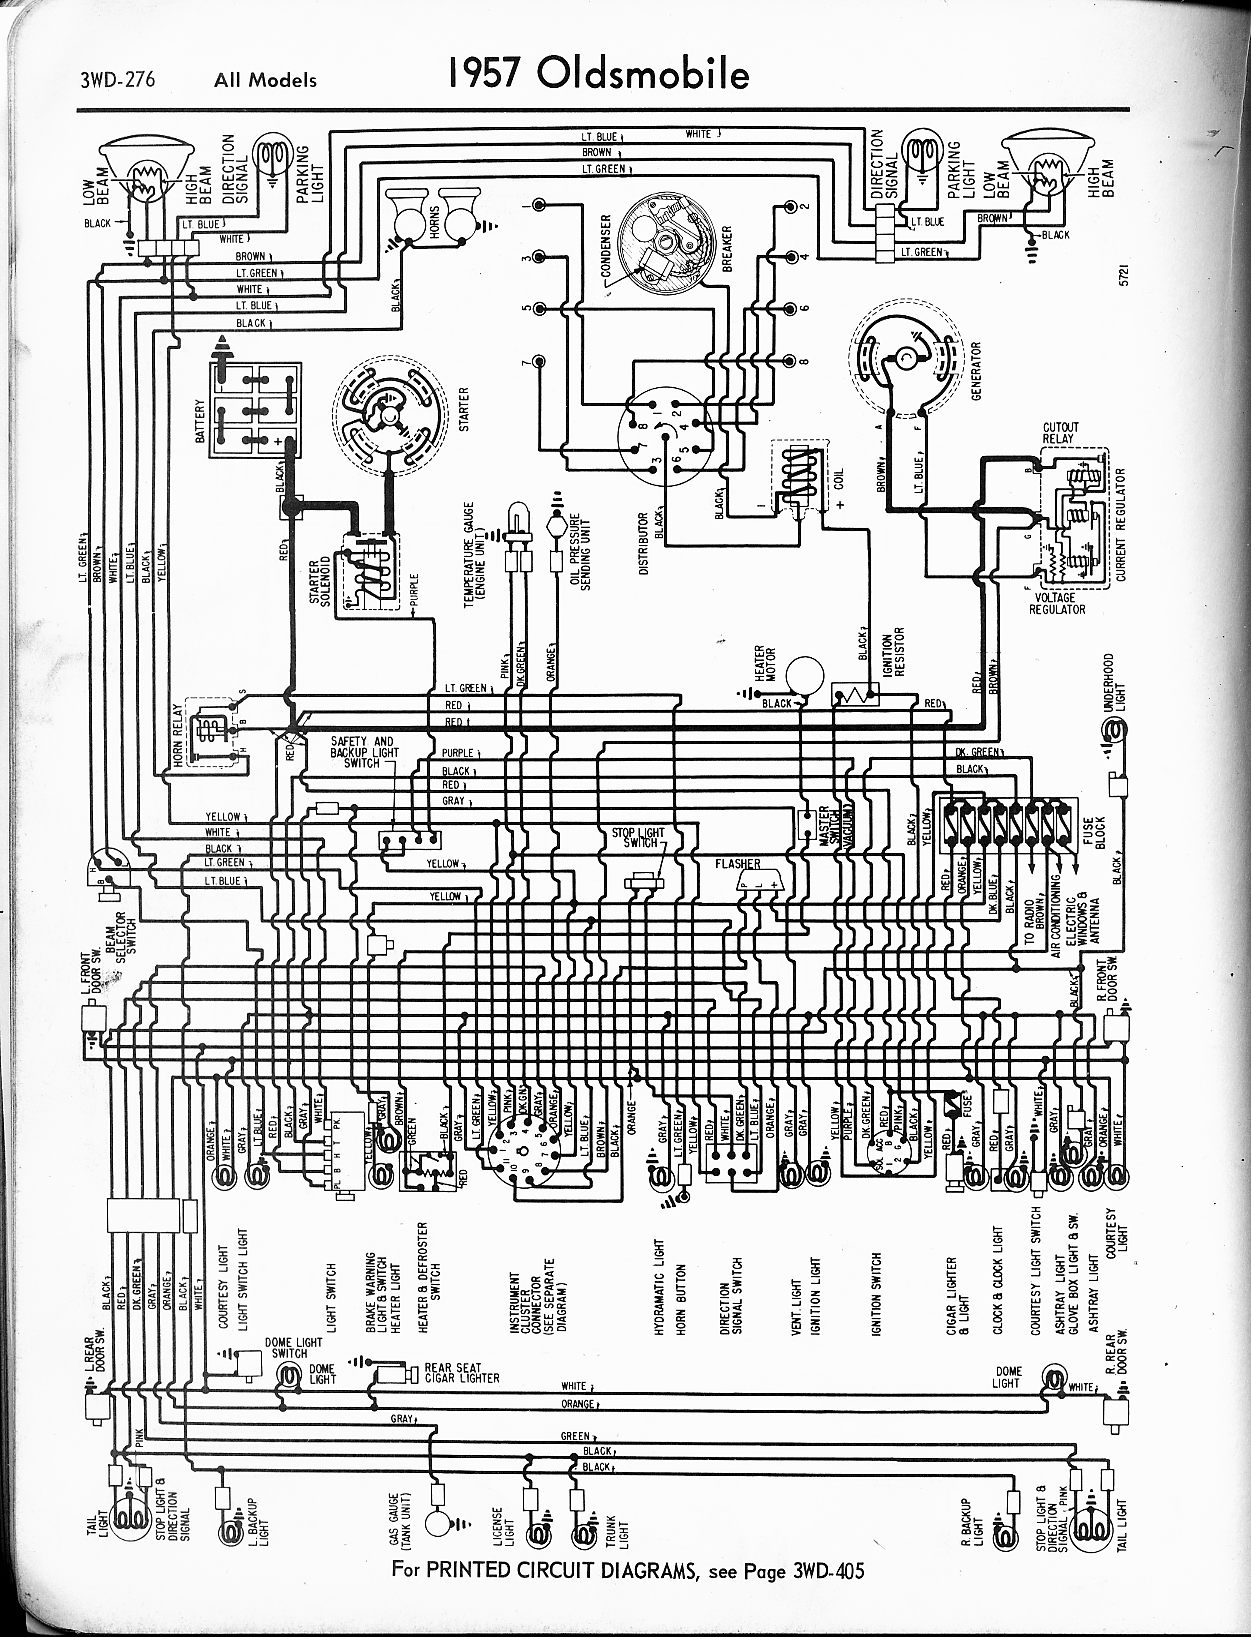 MWire5765 276 oldsmobile wiring diagrams the old car manual project Freightliner Power Window Wiring Diagram at alyssarenee.co